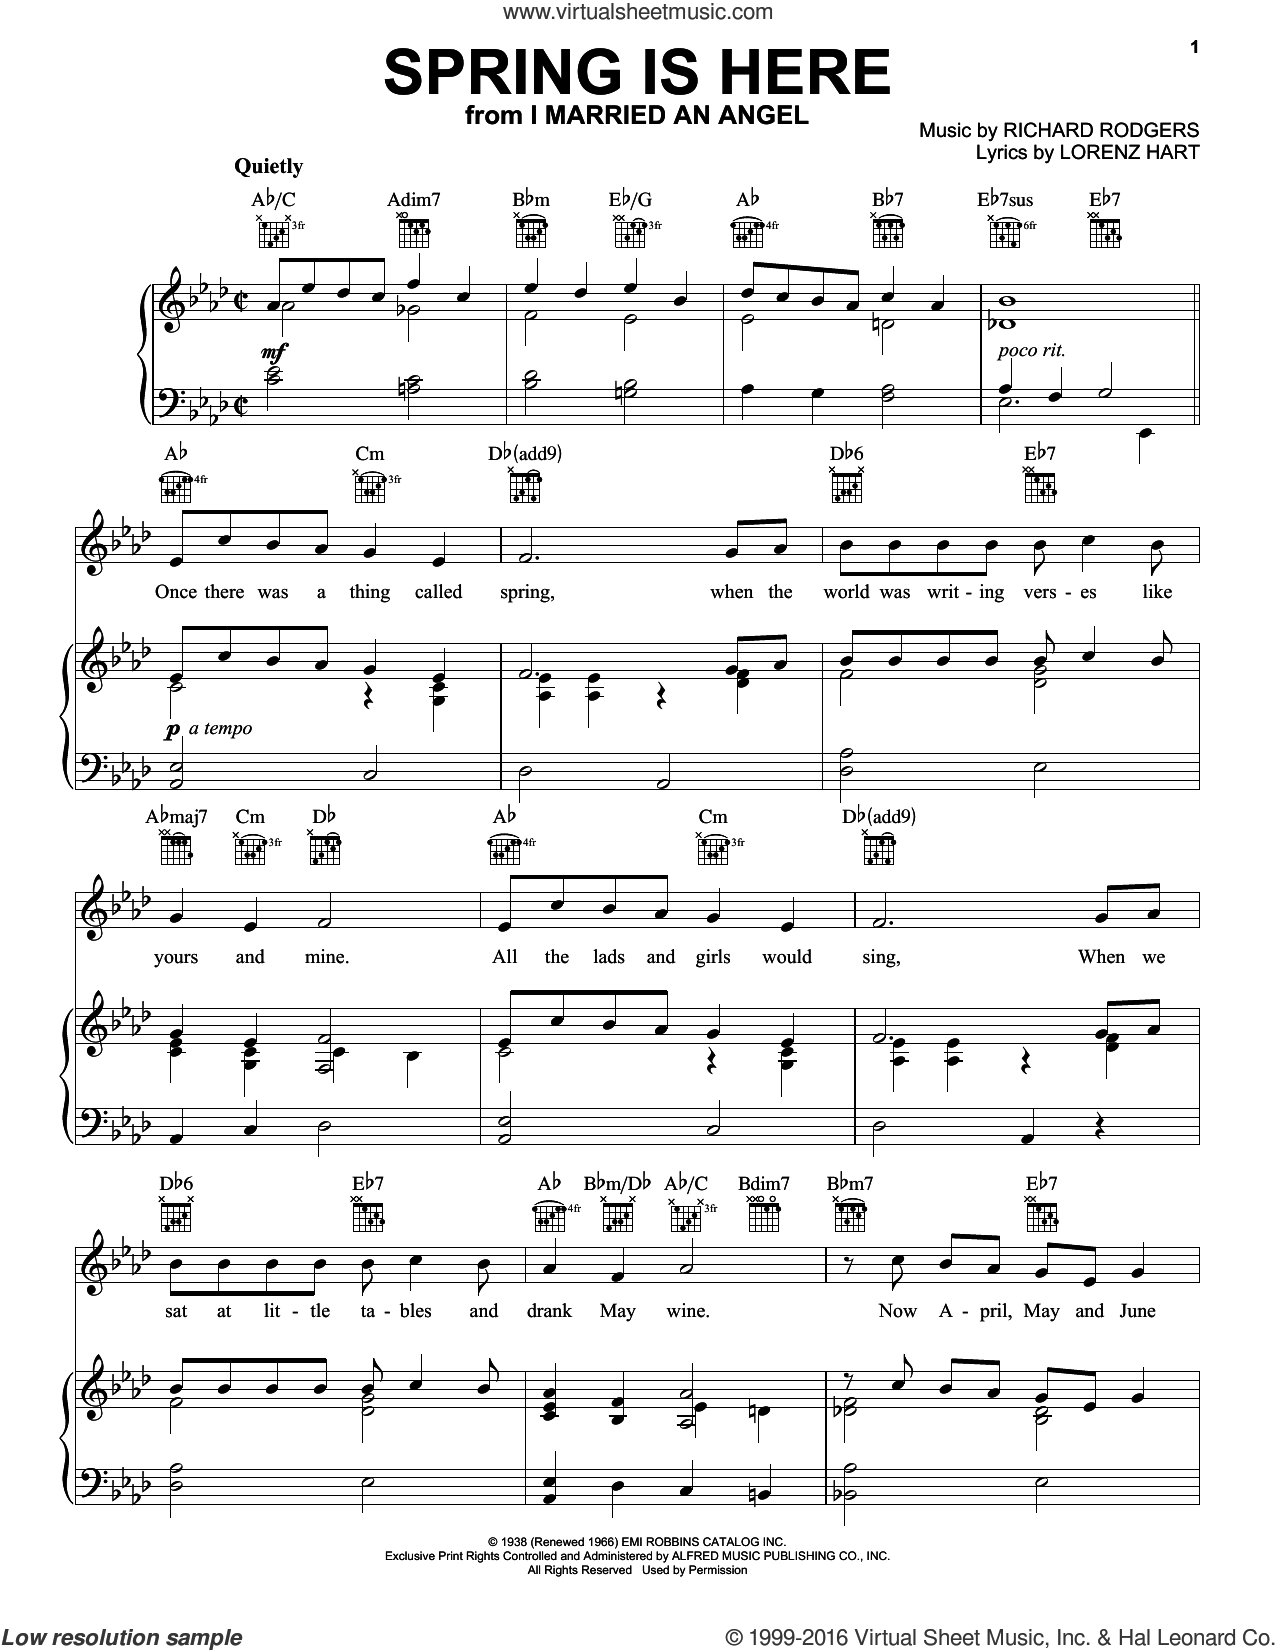 Spring Is Here sheet music for voice, piano or guitar by Rodgers & Hart, Lorenz Hart and Richard Rodgers, intermediate skill level